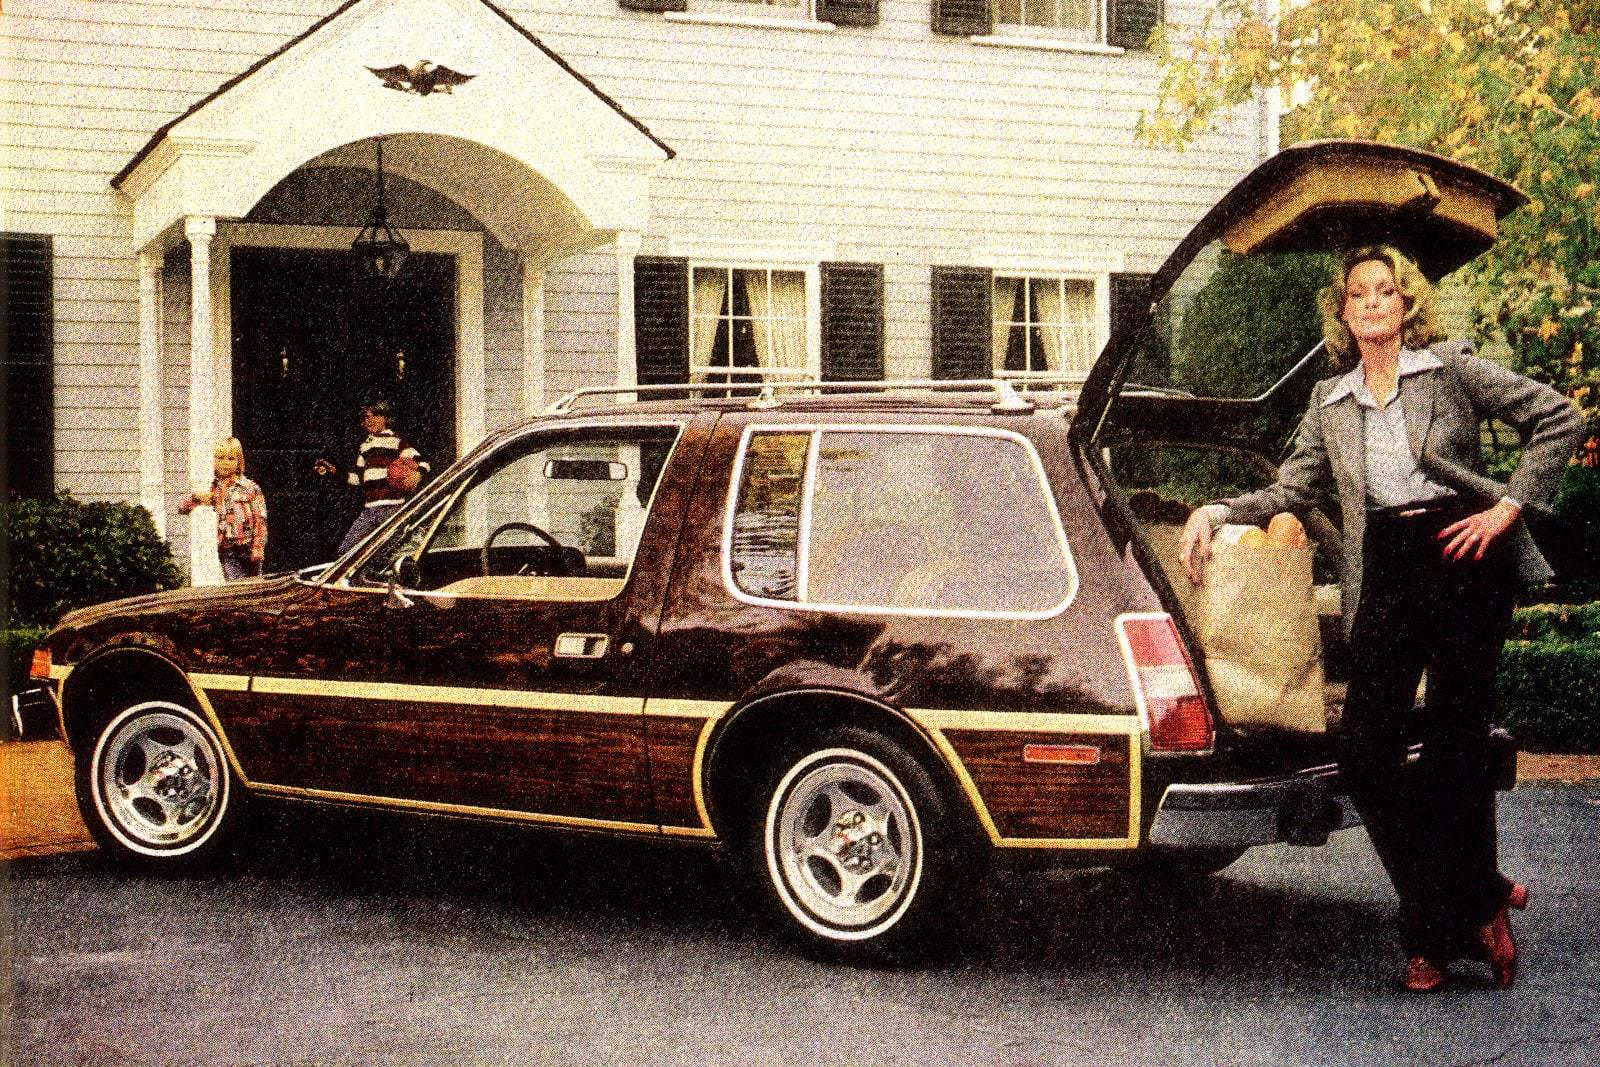 AMC Pacer Wagons from the 1970s